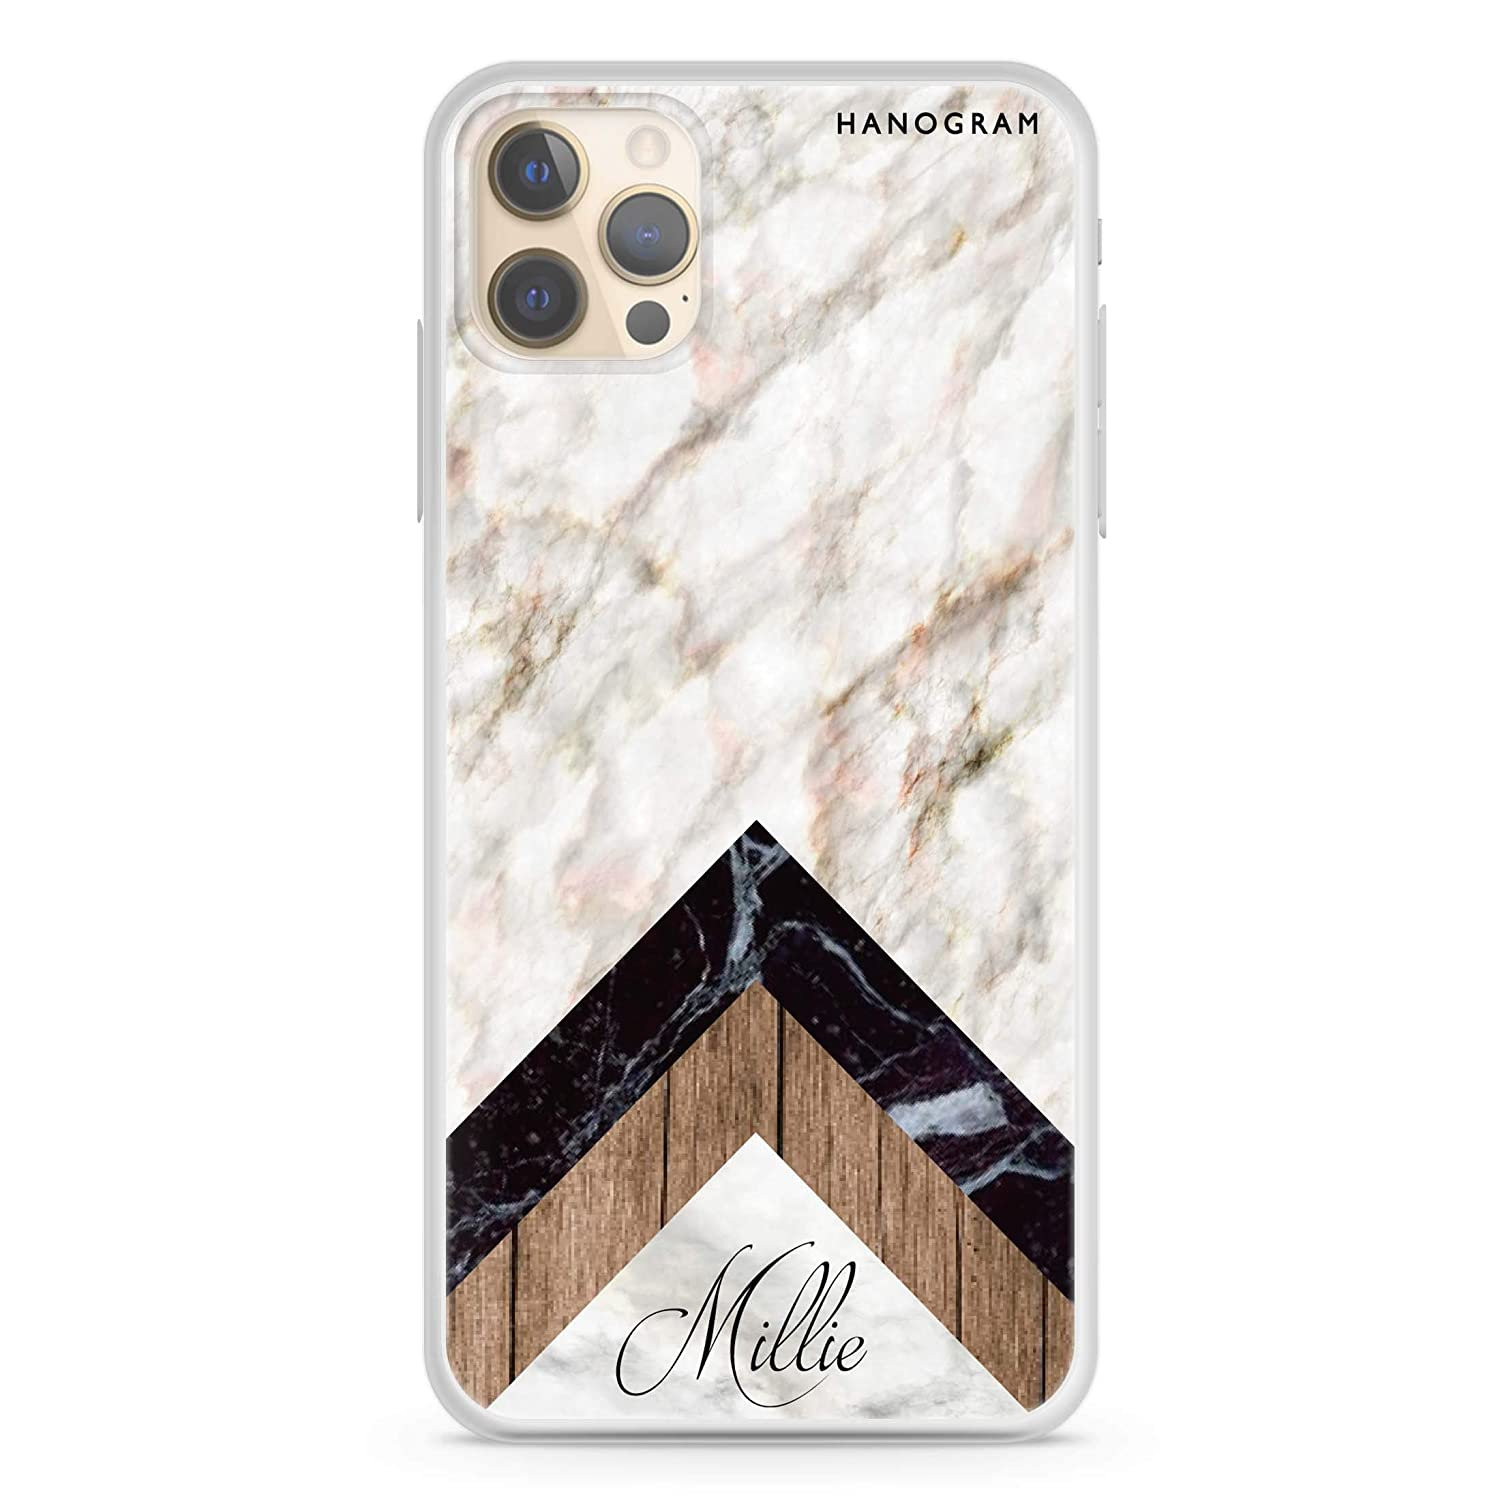 Marble Wood iPhone 12 Pro Case Soft Limited time for free shipping Ranking TOP18 iPho Clear Max